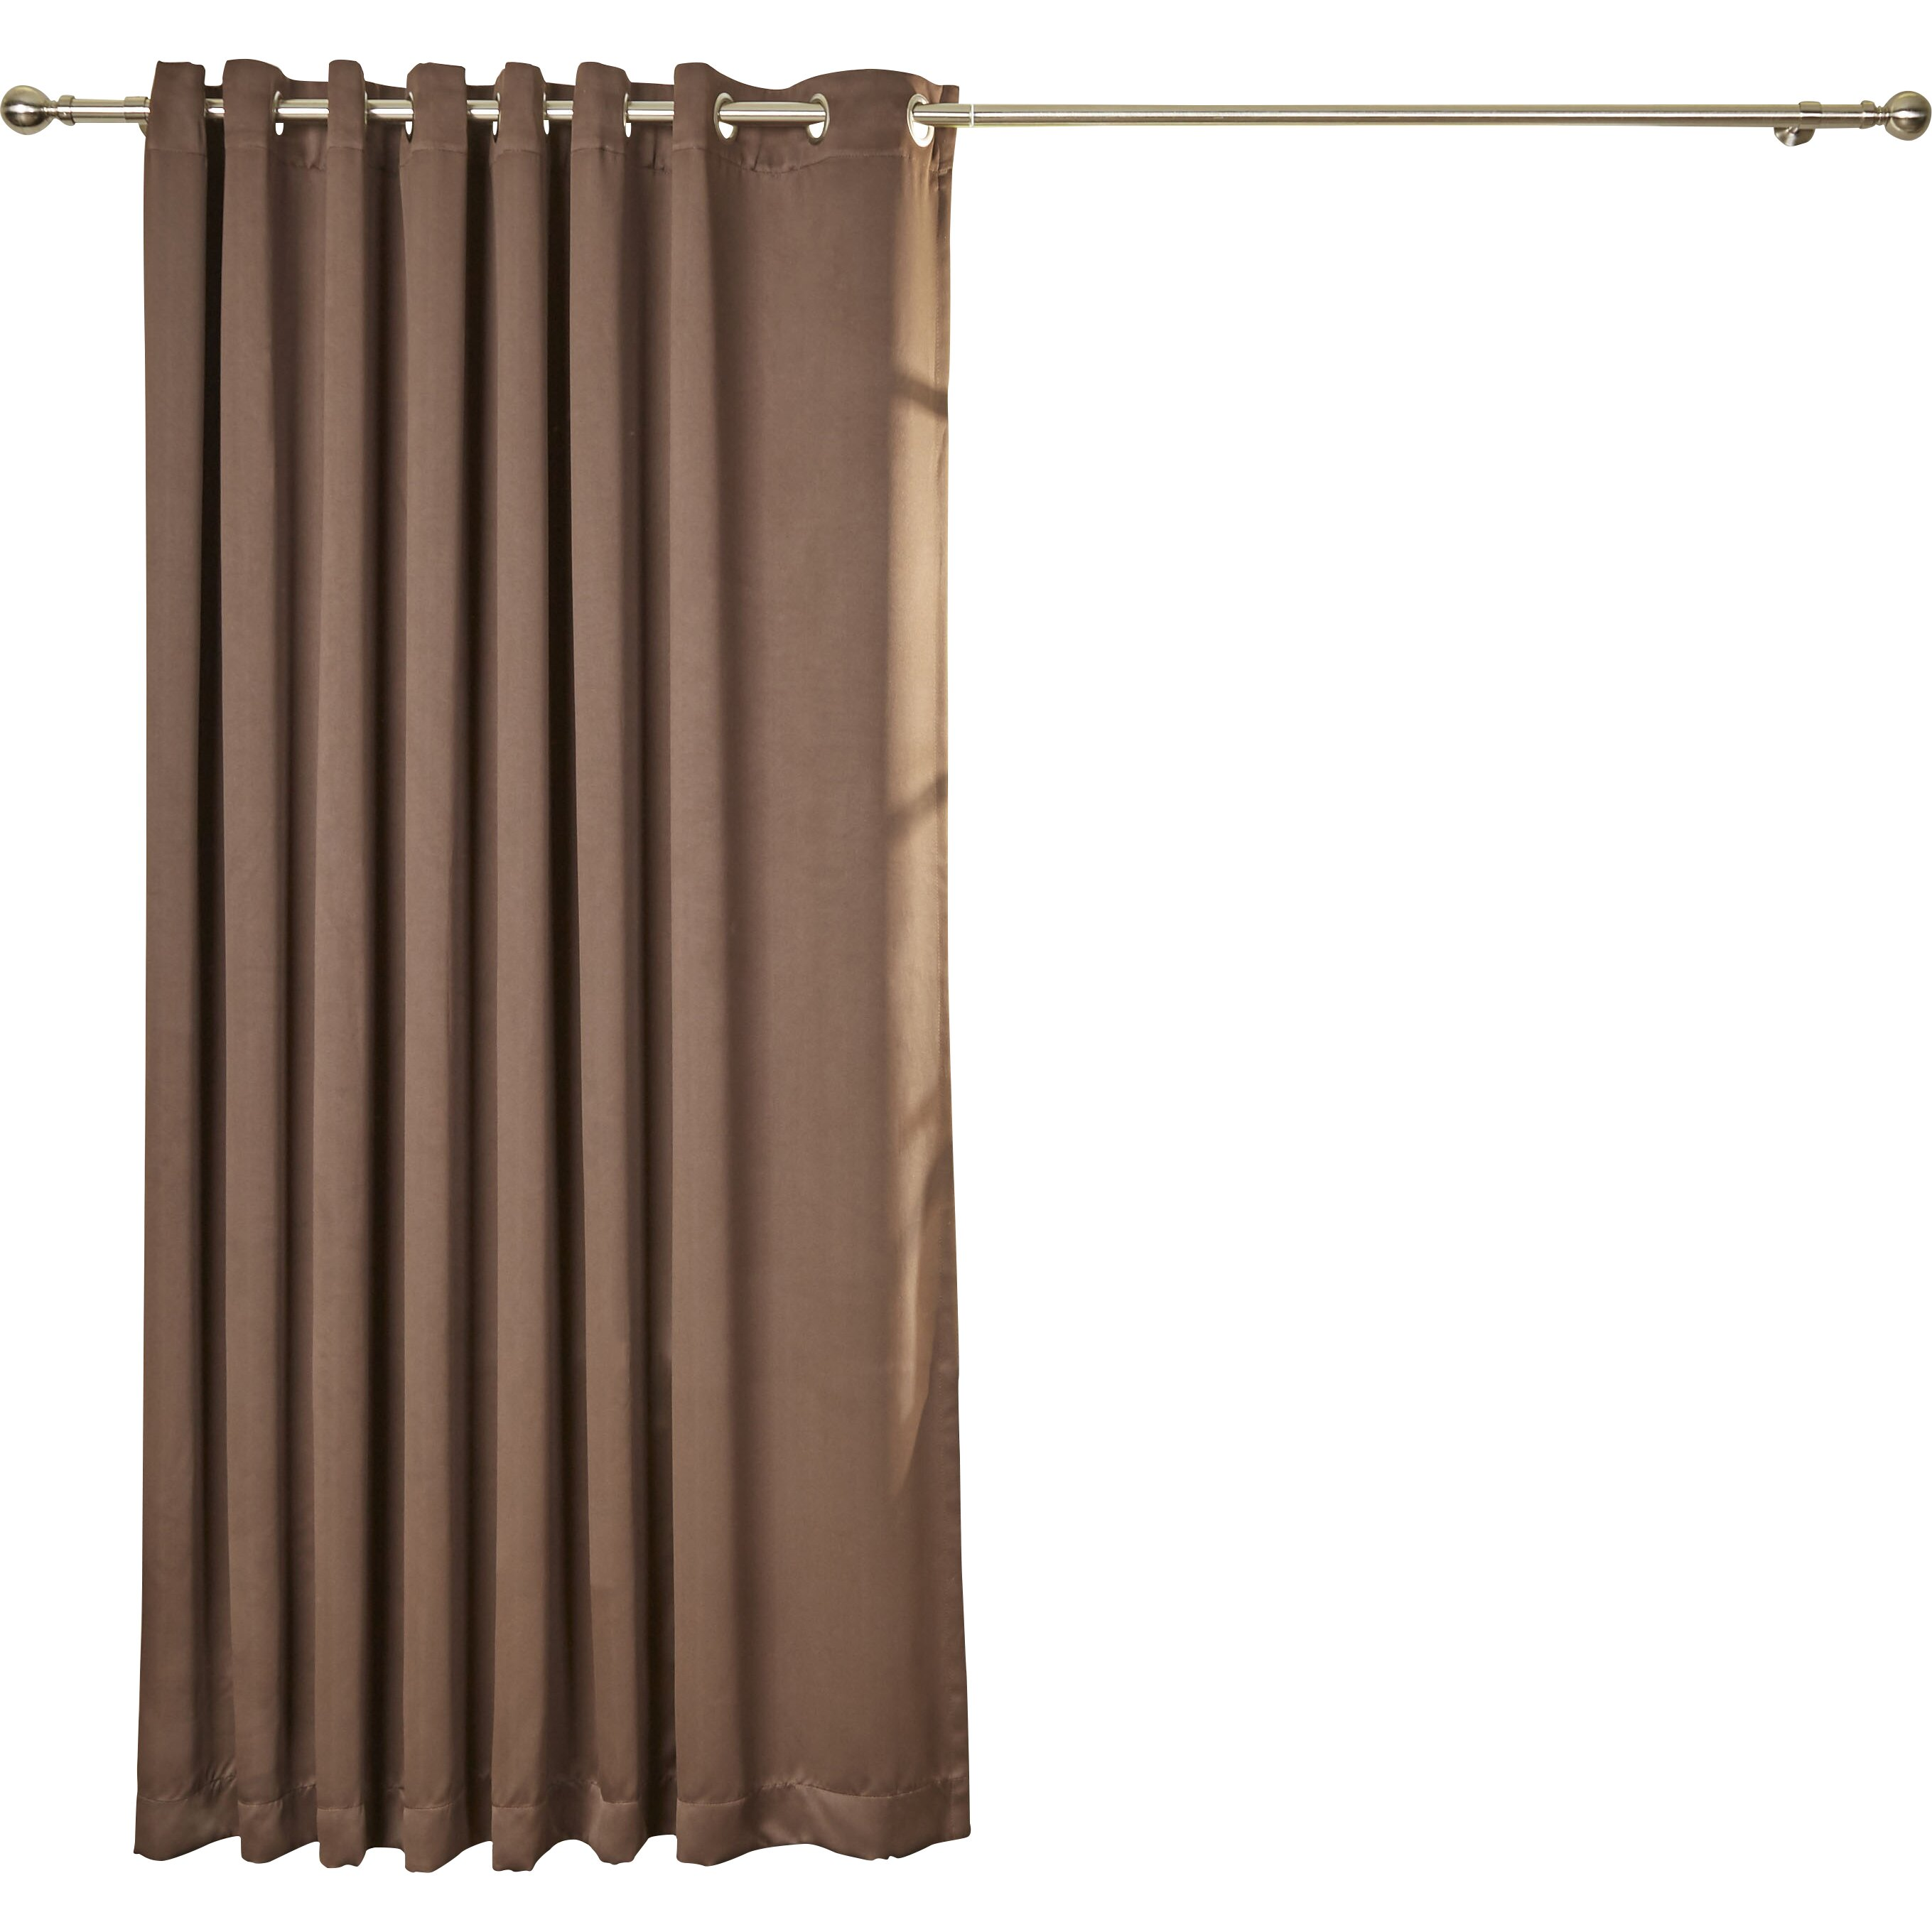 Wayfair Basics Wayfair Basics Blackout Grommet Patio Door Single Curtain Panel Reviews Wayfair